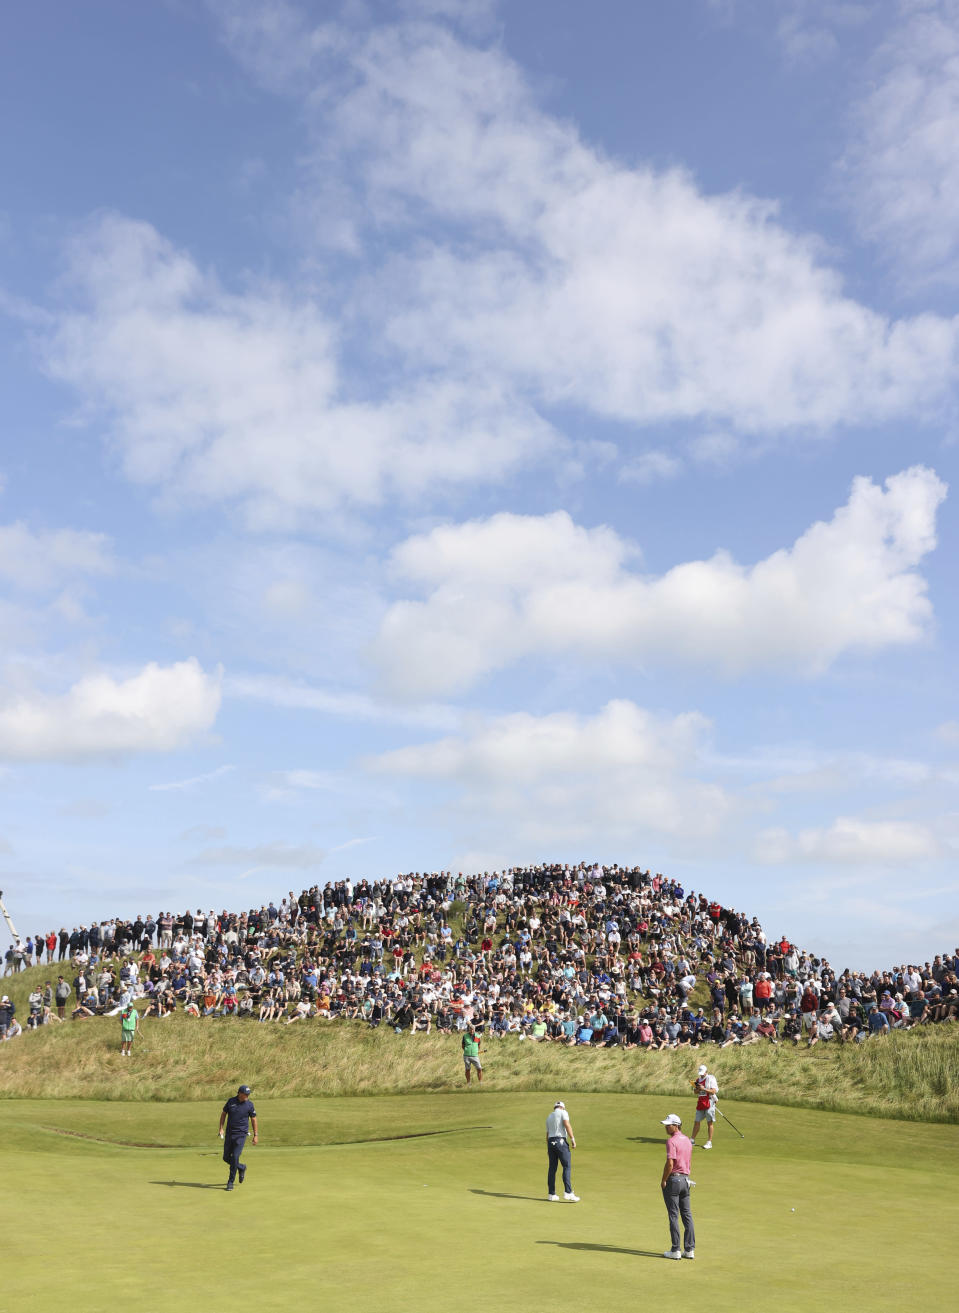 United States' Phil Mickelson, left, England's Terrell Hatton, and United States' Kevin Kisner walk on the 6th green prior to putting during the first round British Open Golf Championship at Royal St George's golf course Sandwich, England, Thursday, July 15, 2021. (AP Photo/Ian Walton)